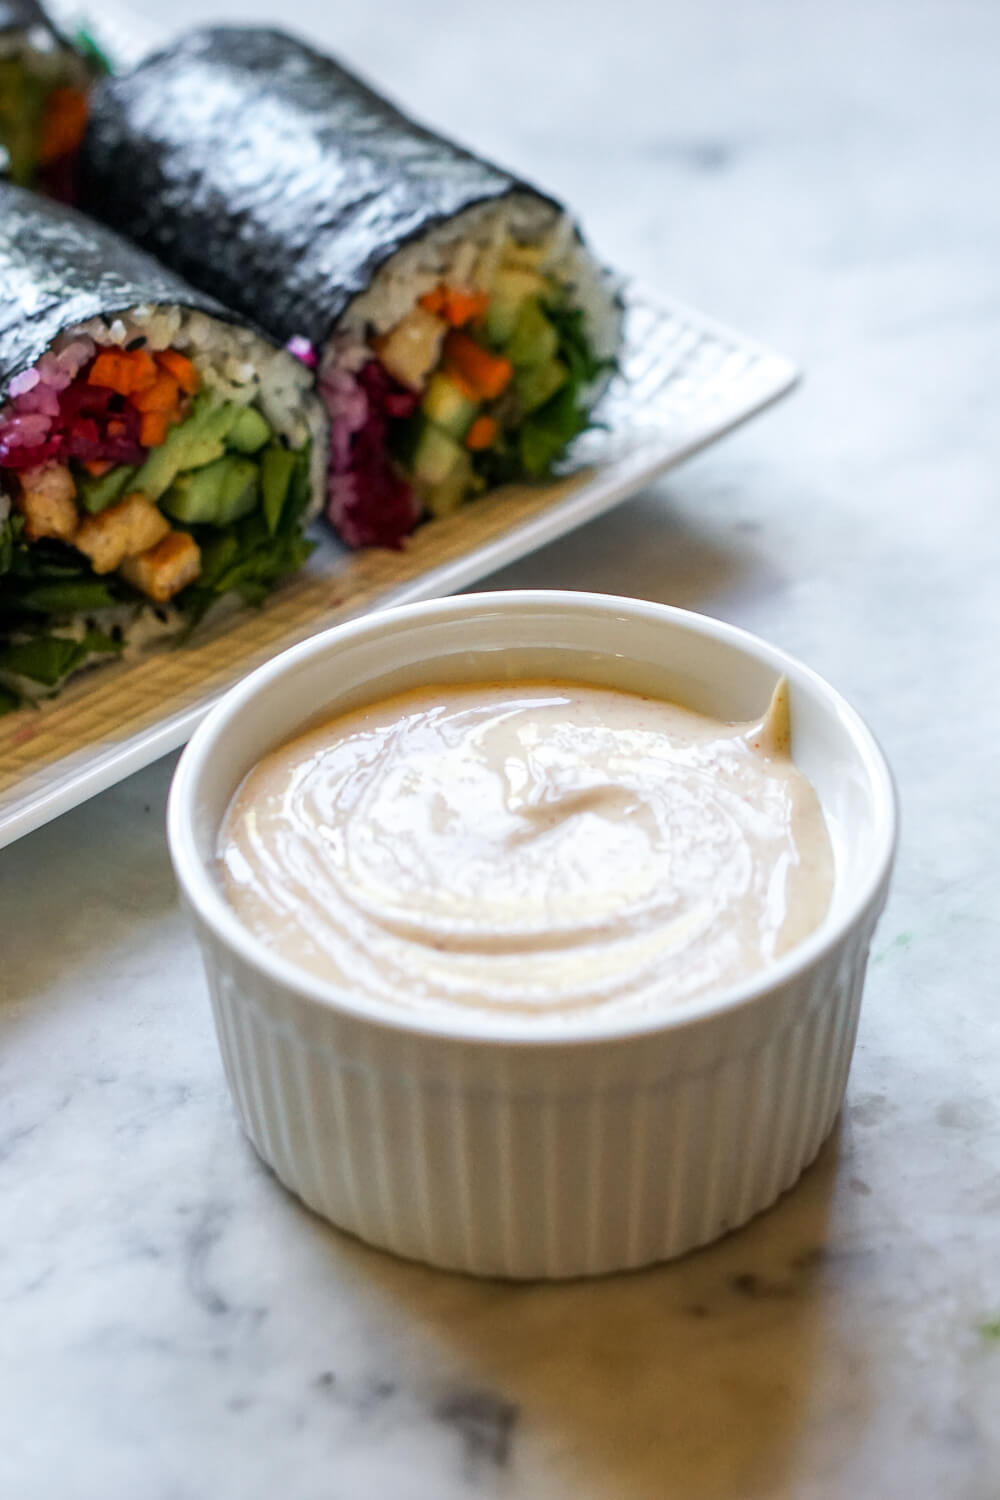 A photo of a white ramekin filled with homemade Japanese yum yum sauce. Sushi rolls can be seen in the background.